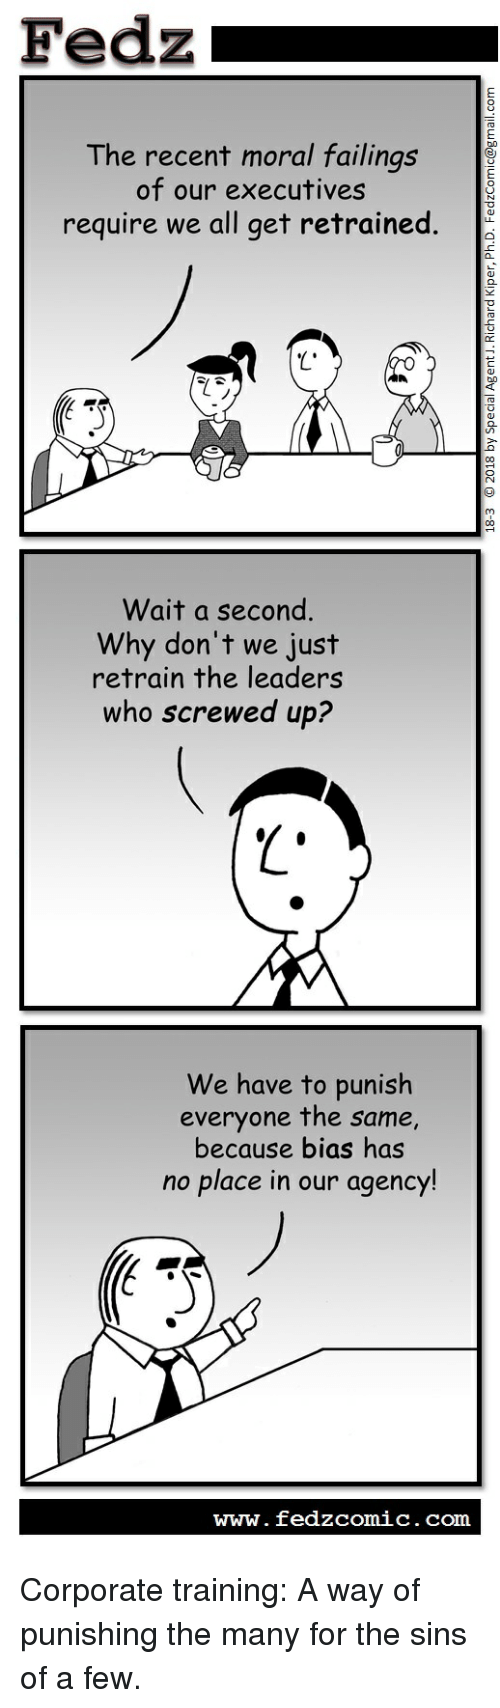 Comics, Corporate, and Com: Fedzi  The recent moral failings  of our executives  require we all get retrained.  Wait a second.  Why don't we just  retrain the leaders  who screwed up?  We have to punish  everyone the same,  because bias has  no place in our agency!  www.fedzcomic.com Corporate training: A way of punishing the many for the sins of a few.